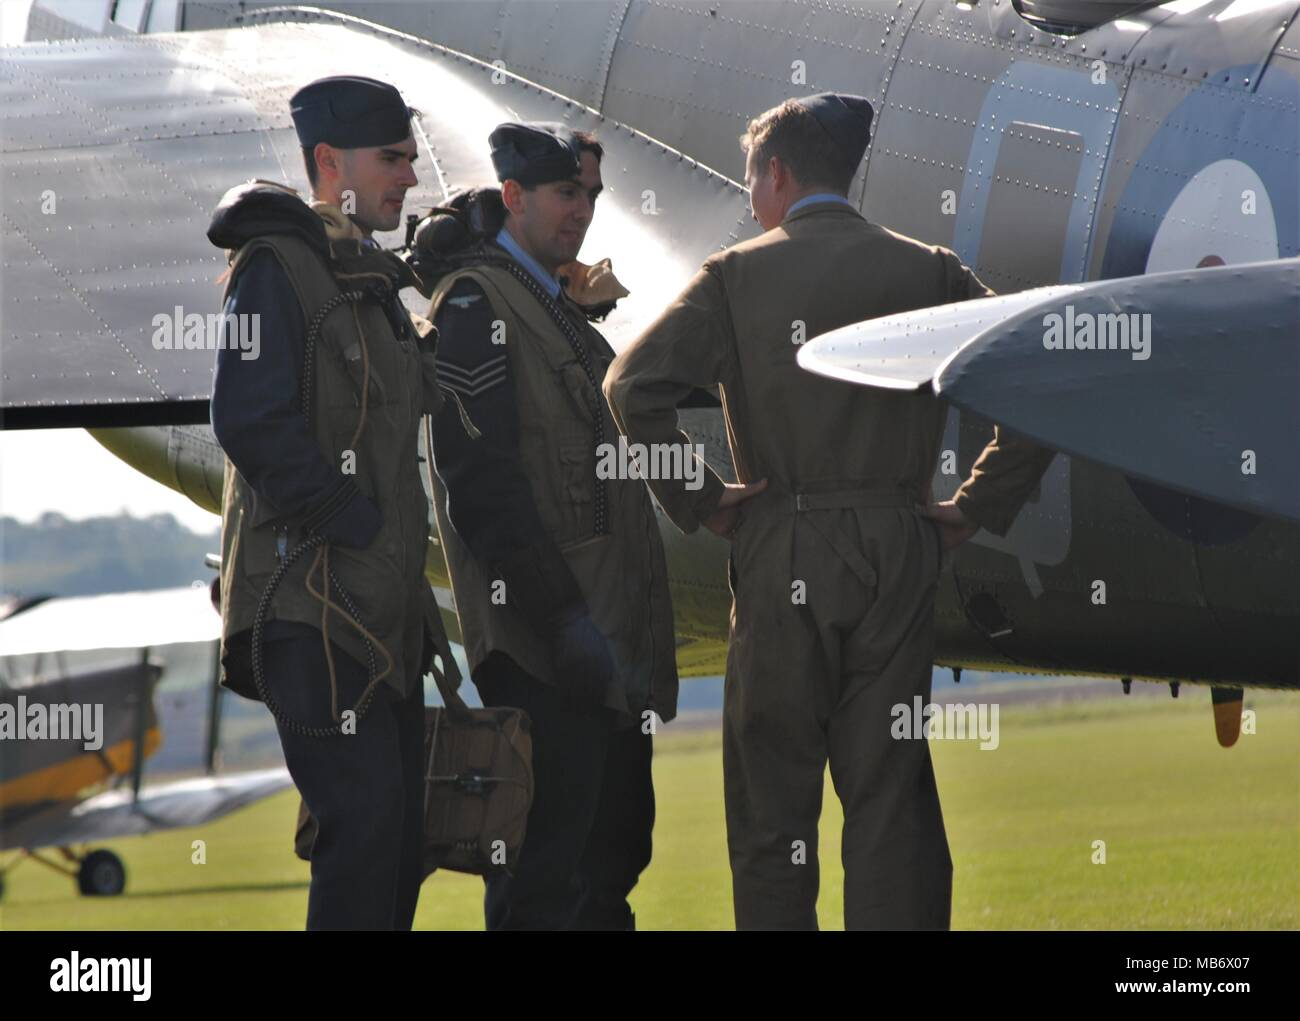 Airmen standing beside a Bristol Blenheim bomber, modern with period costume 're enactors. - Stock Image